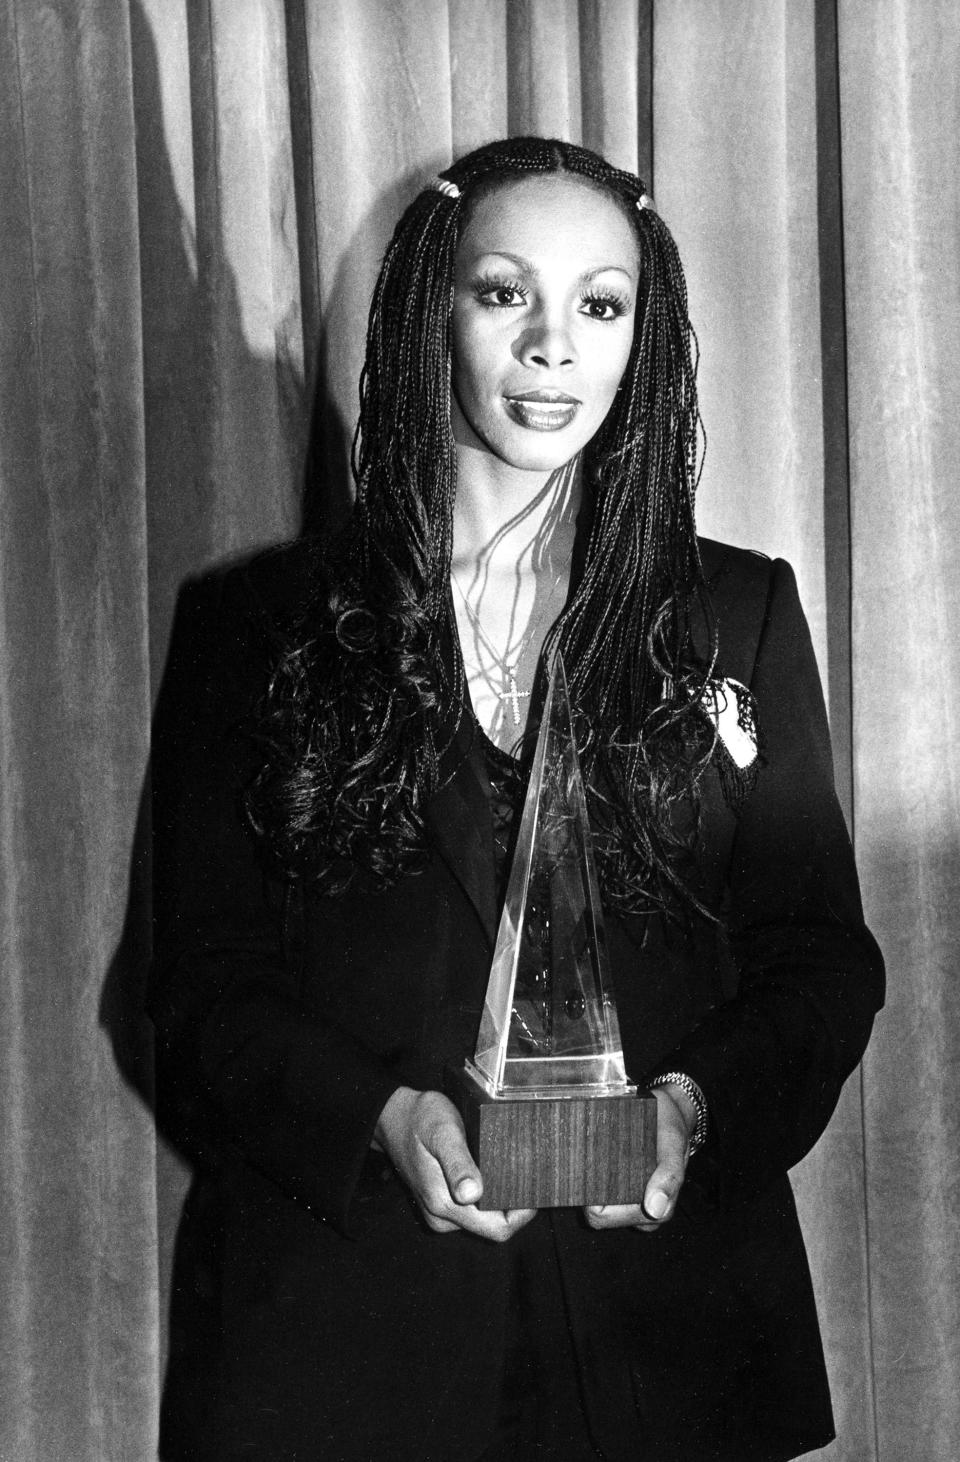 """FILE - In this Jan. 18, 1980 file photo, Donna Summer poses with her award at the American Music Awards in Los Angeles, Calif. Summer, the Queen of Disco who ruled the dance floors with anthems like """"Last Dance,"""" """"Love to Love You Baby"""" and """"Bad Girl,"""" has died. Her family released a statement, saying Summer died Thursday, May 17, 2012. She was 63. (AP Photo/Nick Ut, File)"""